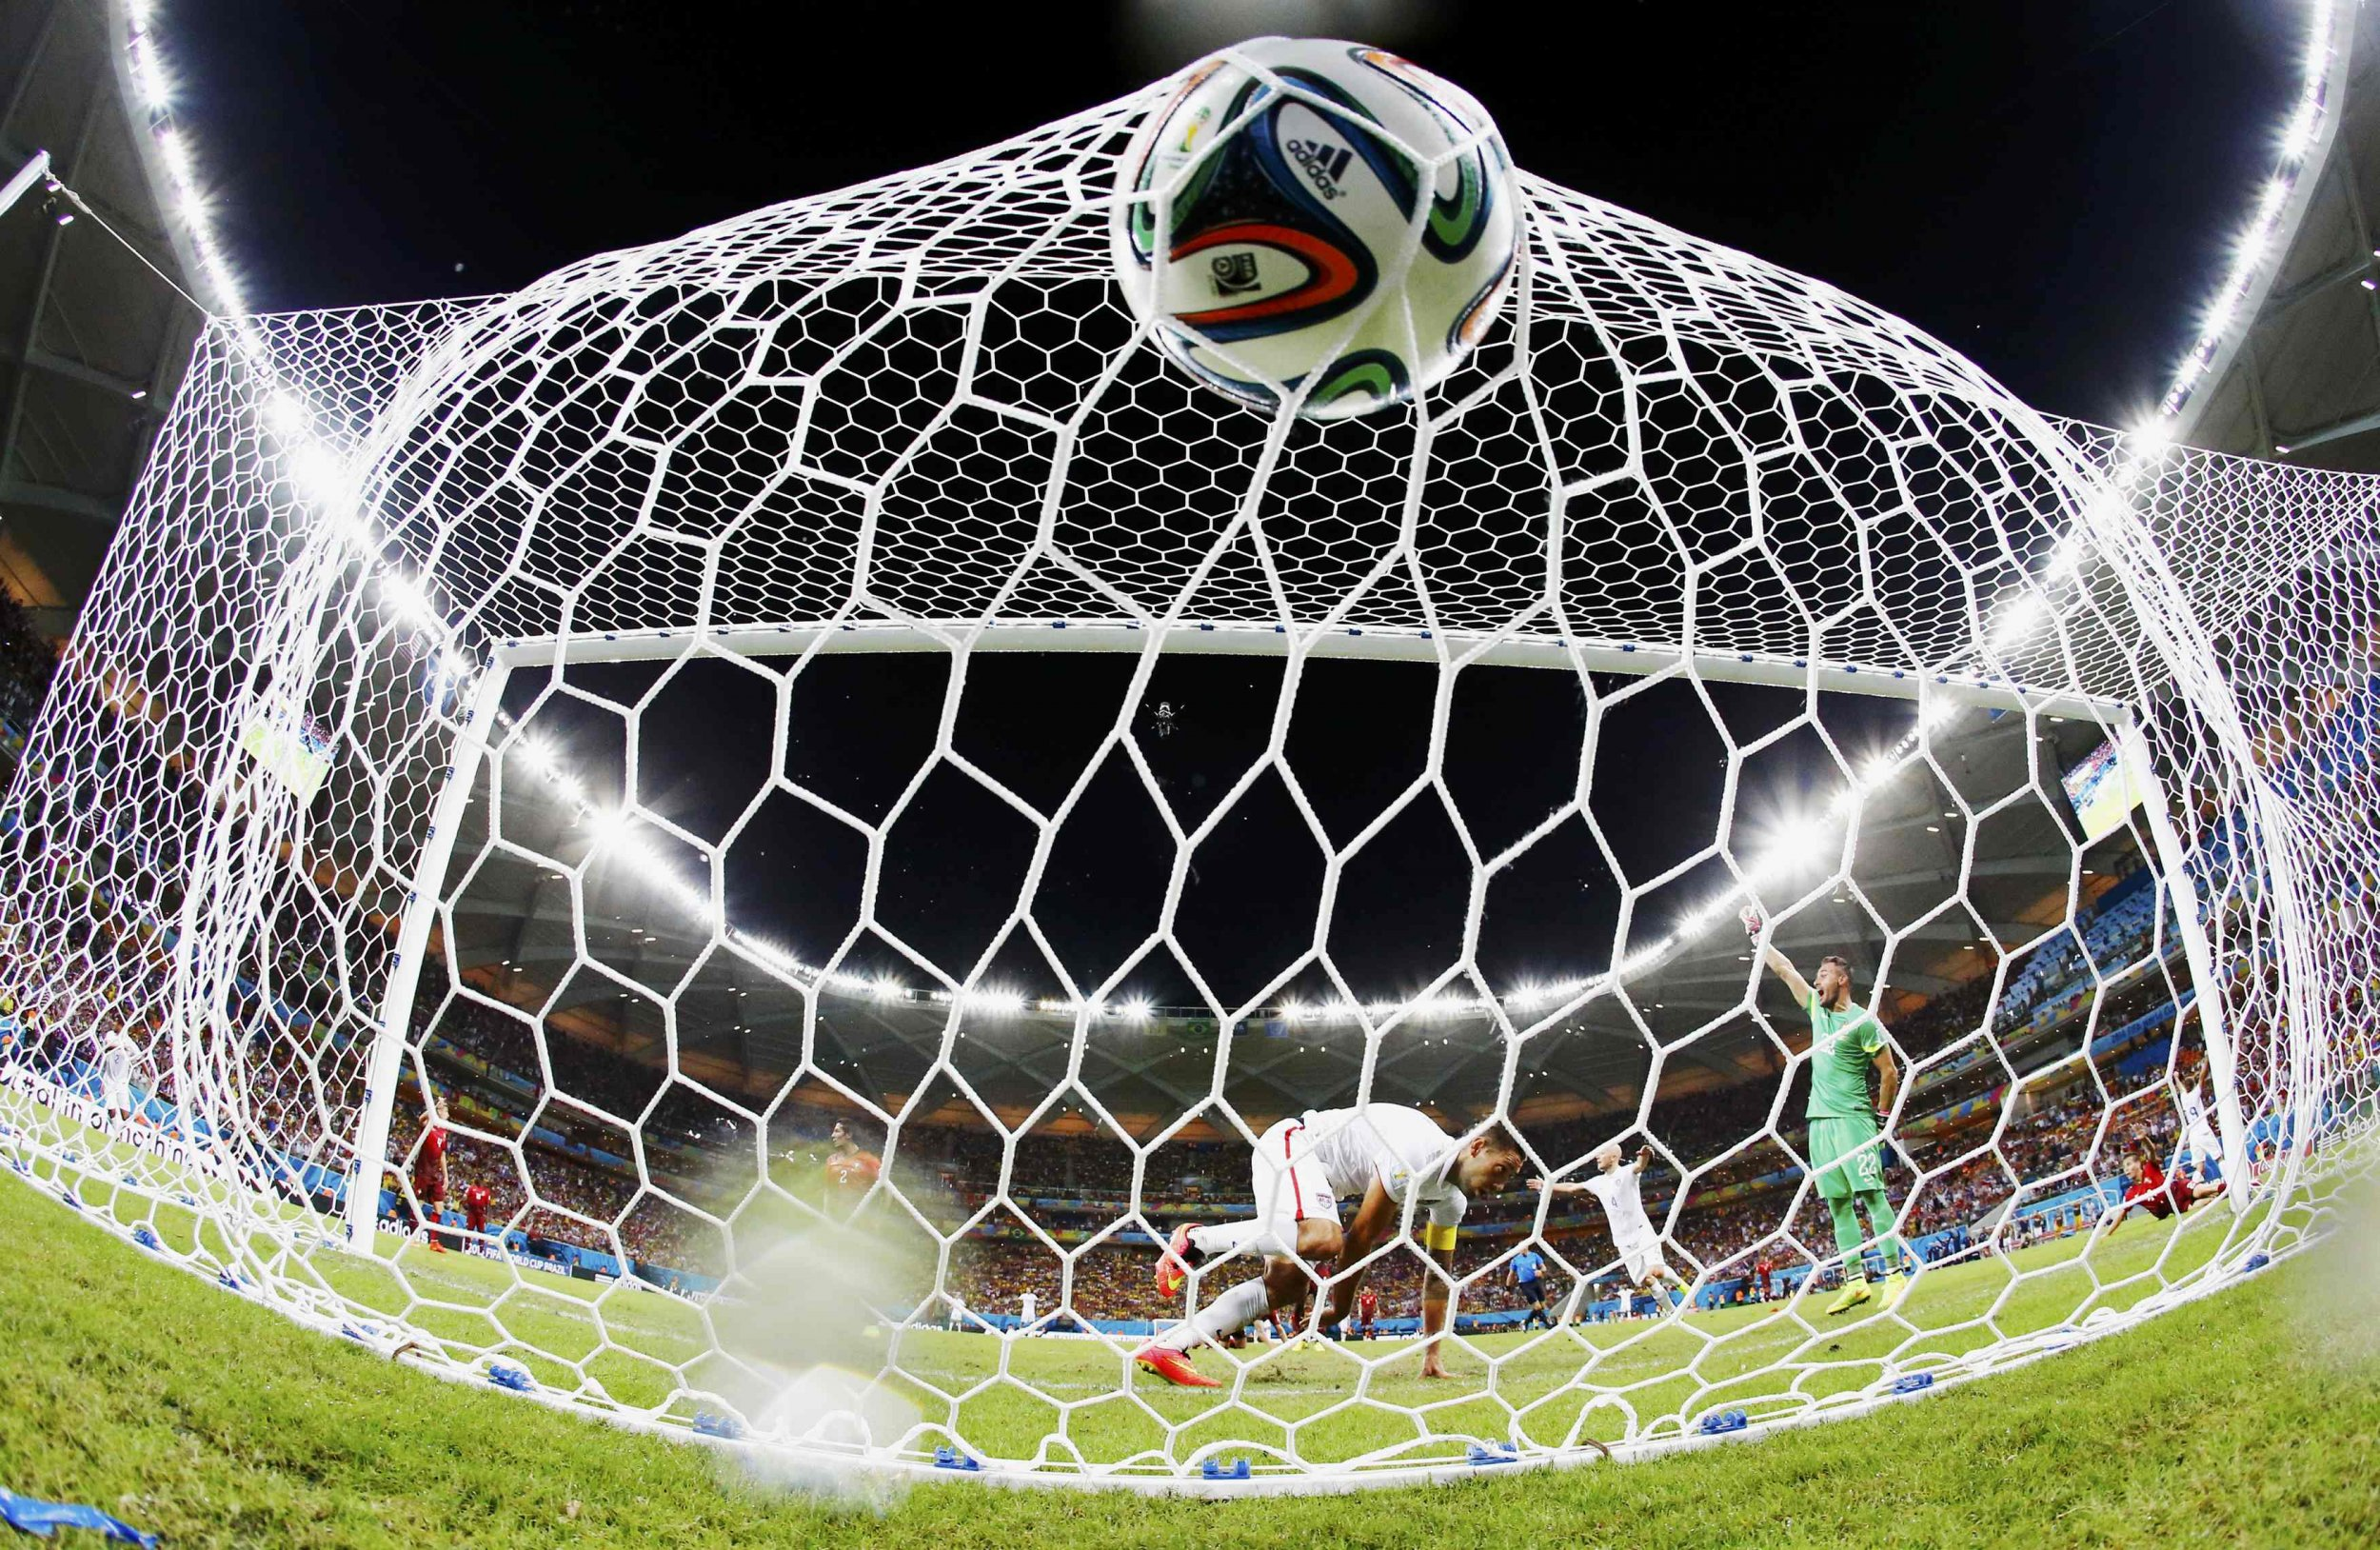 Portugal Stuns U.S. With a Late Tie